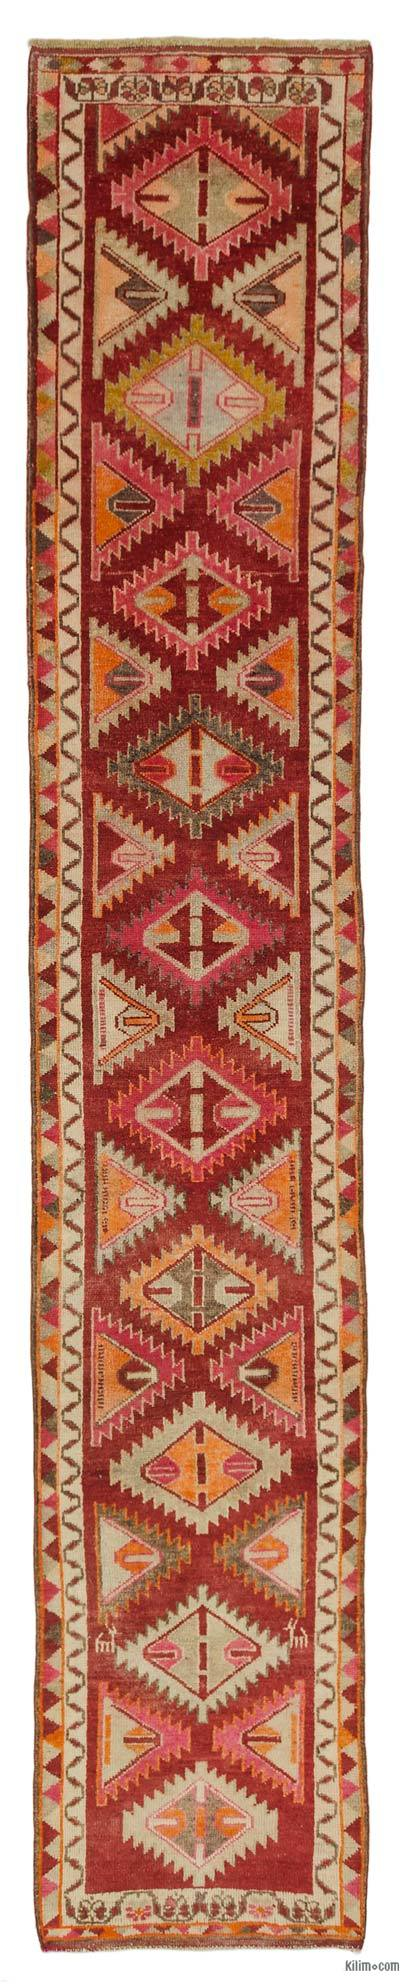 "Vintage Turkish Runner Rug - 2' 10"" x 15' 11"" (34 in. x 191 in.)"